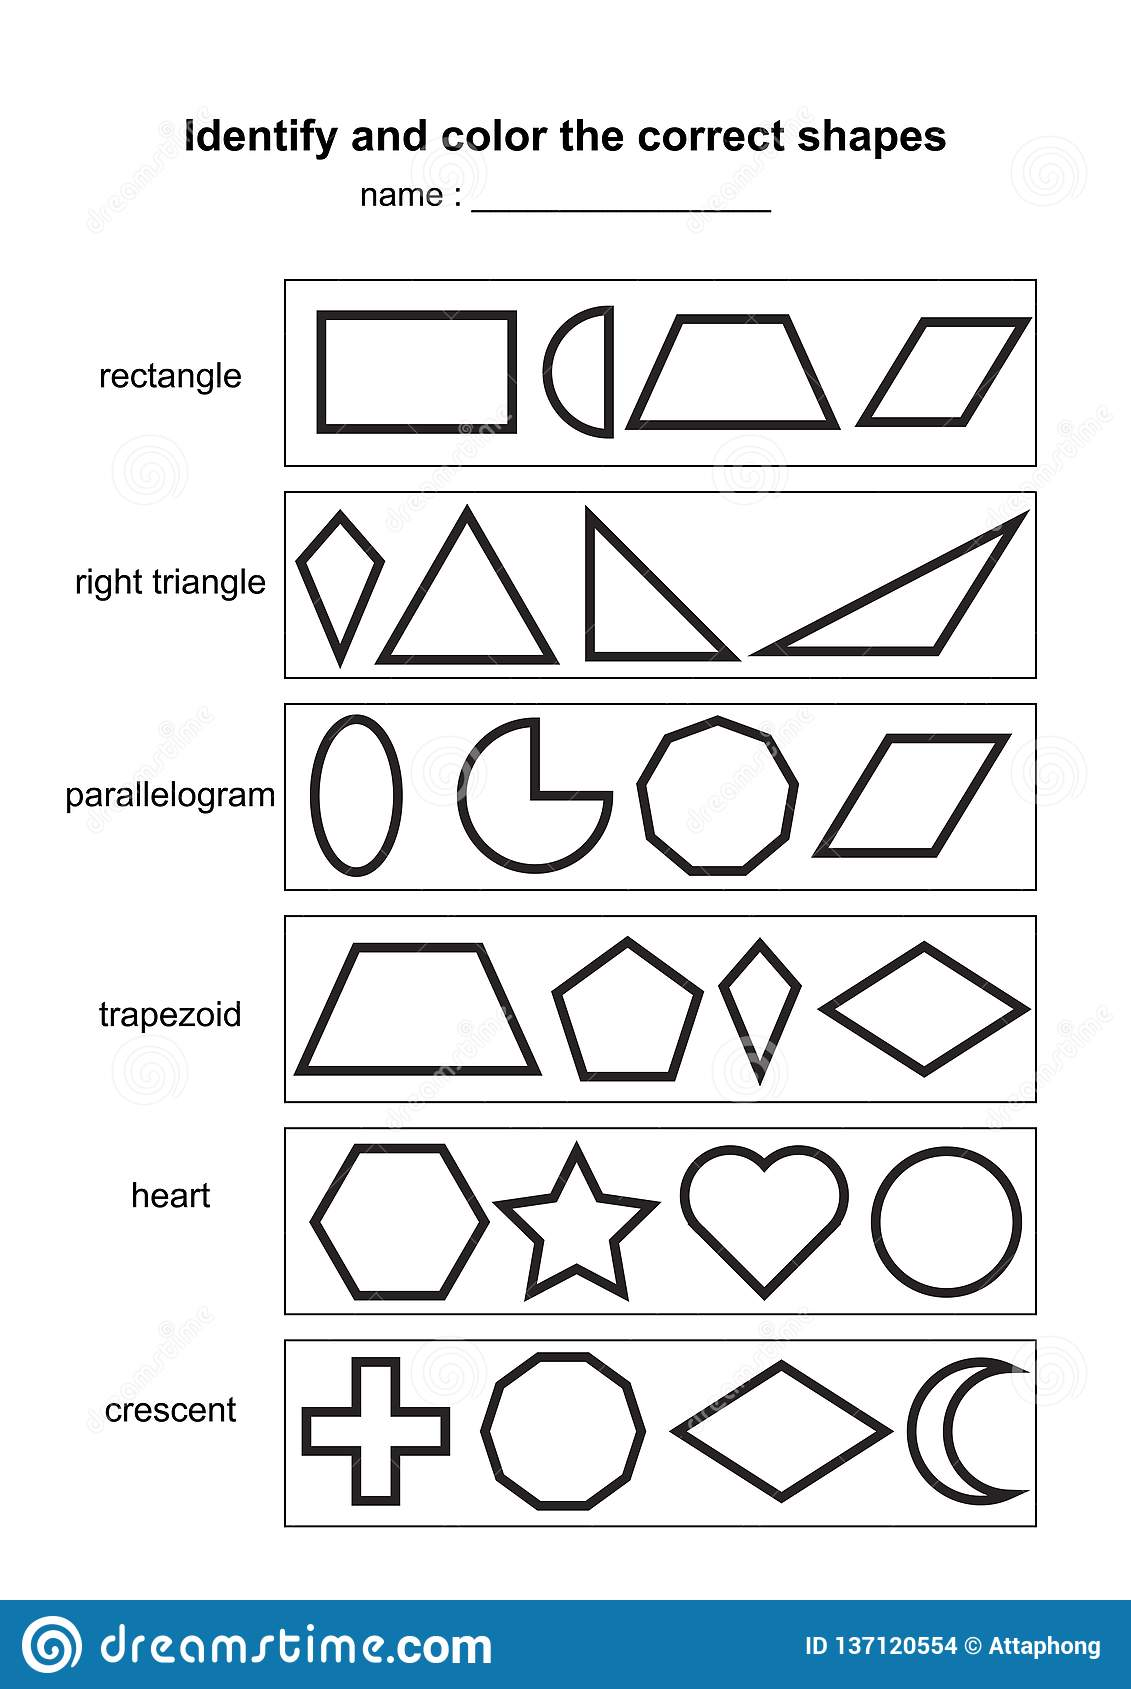 image about Printable Geometric Shapes titled Understand And Shade The Proper Styles. Enlightening Geometric